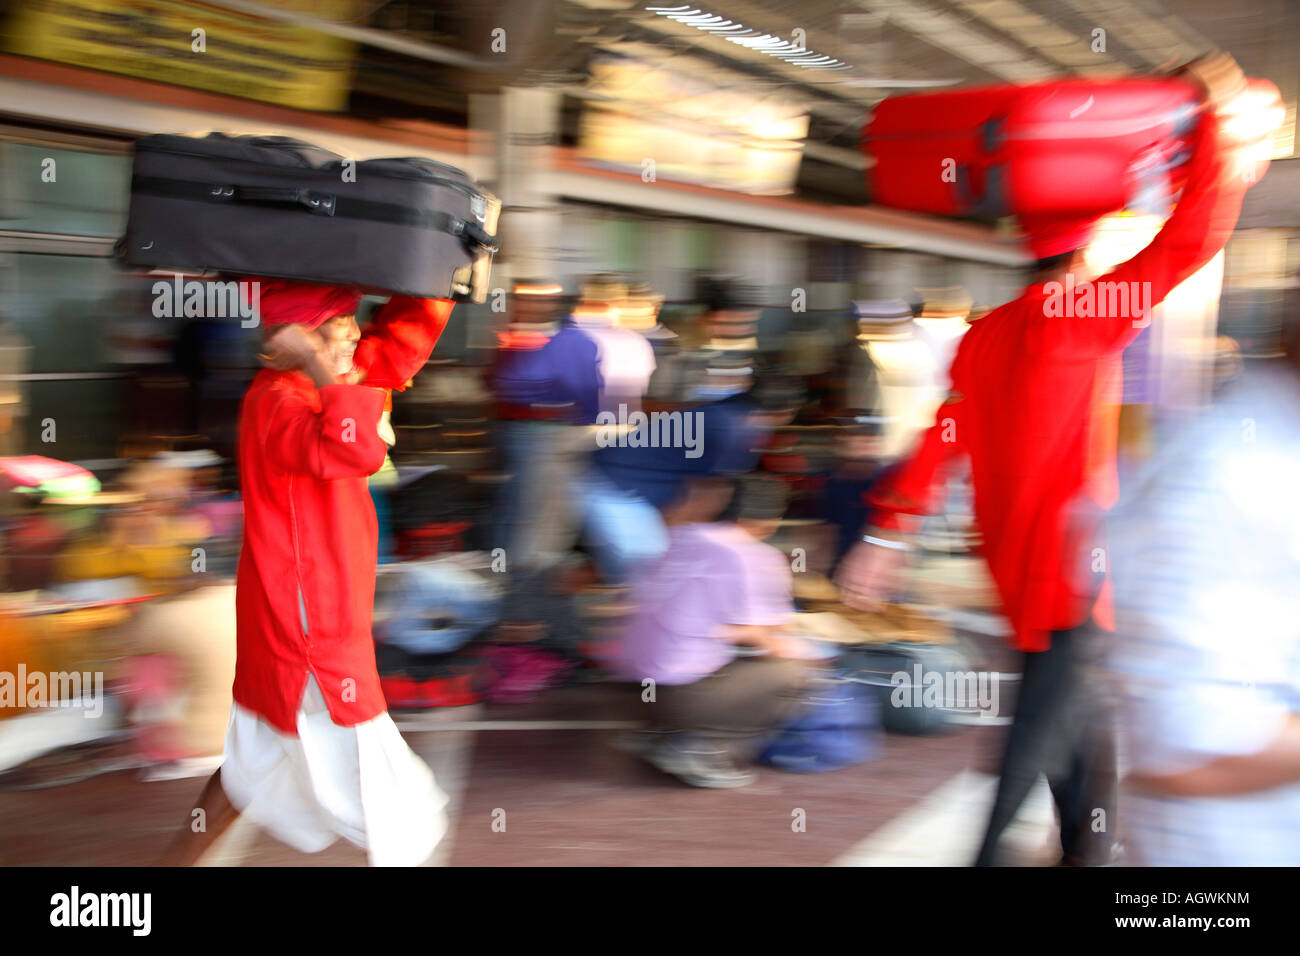 India Haridvar  Hardivar railway station platform porters baggage luggage travellers indians waiting 2007 - Stock Image